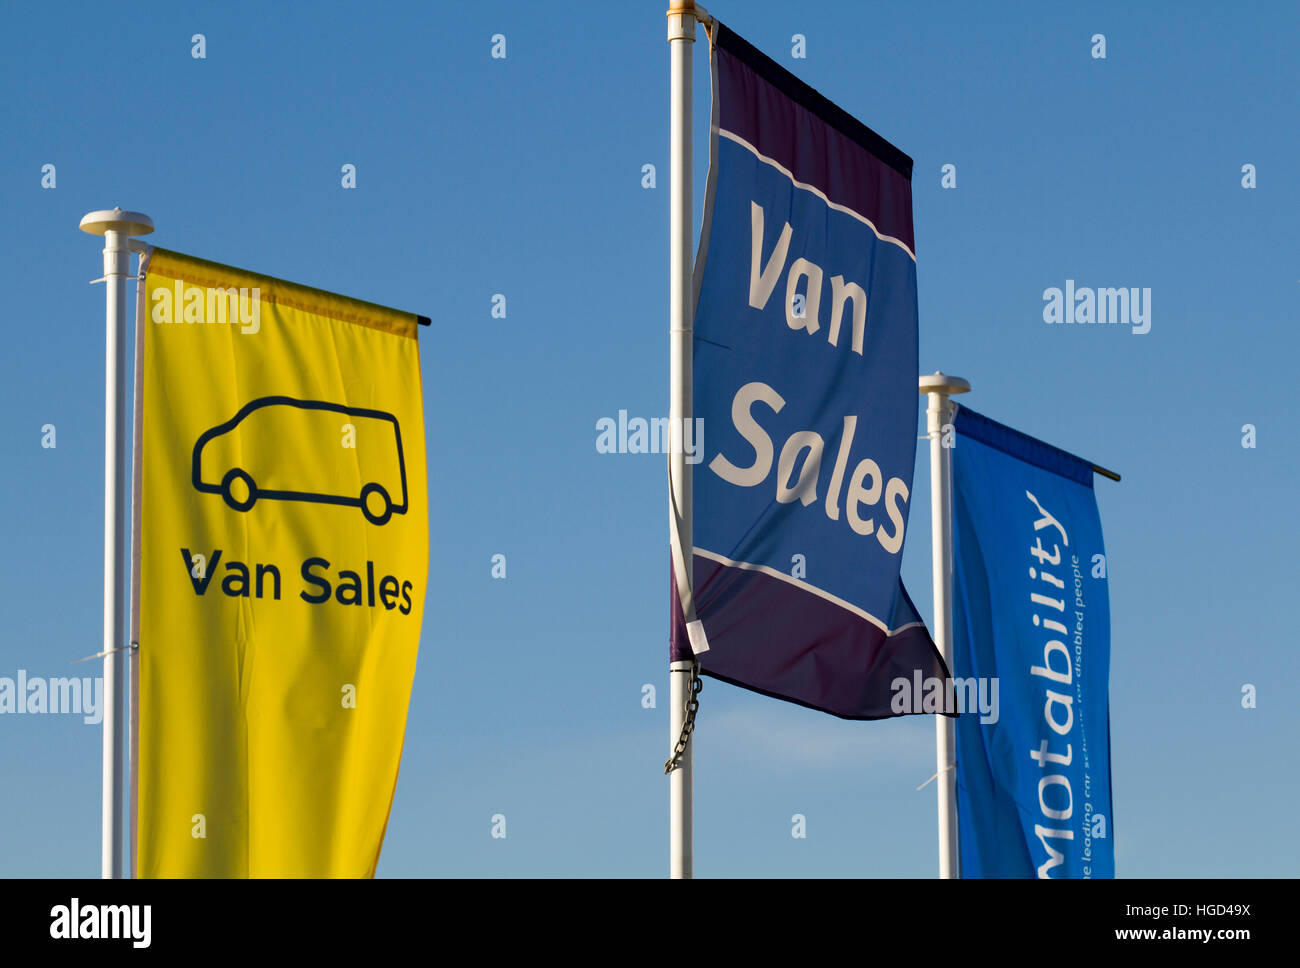 car dealership flag stock photos car dealership flag stock images alamy. Black Bedroom Furniture Sets. Home Design Ideas